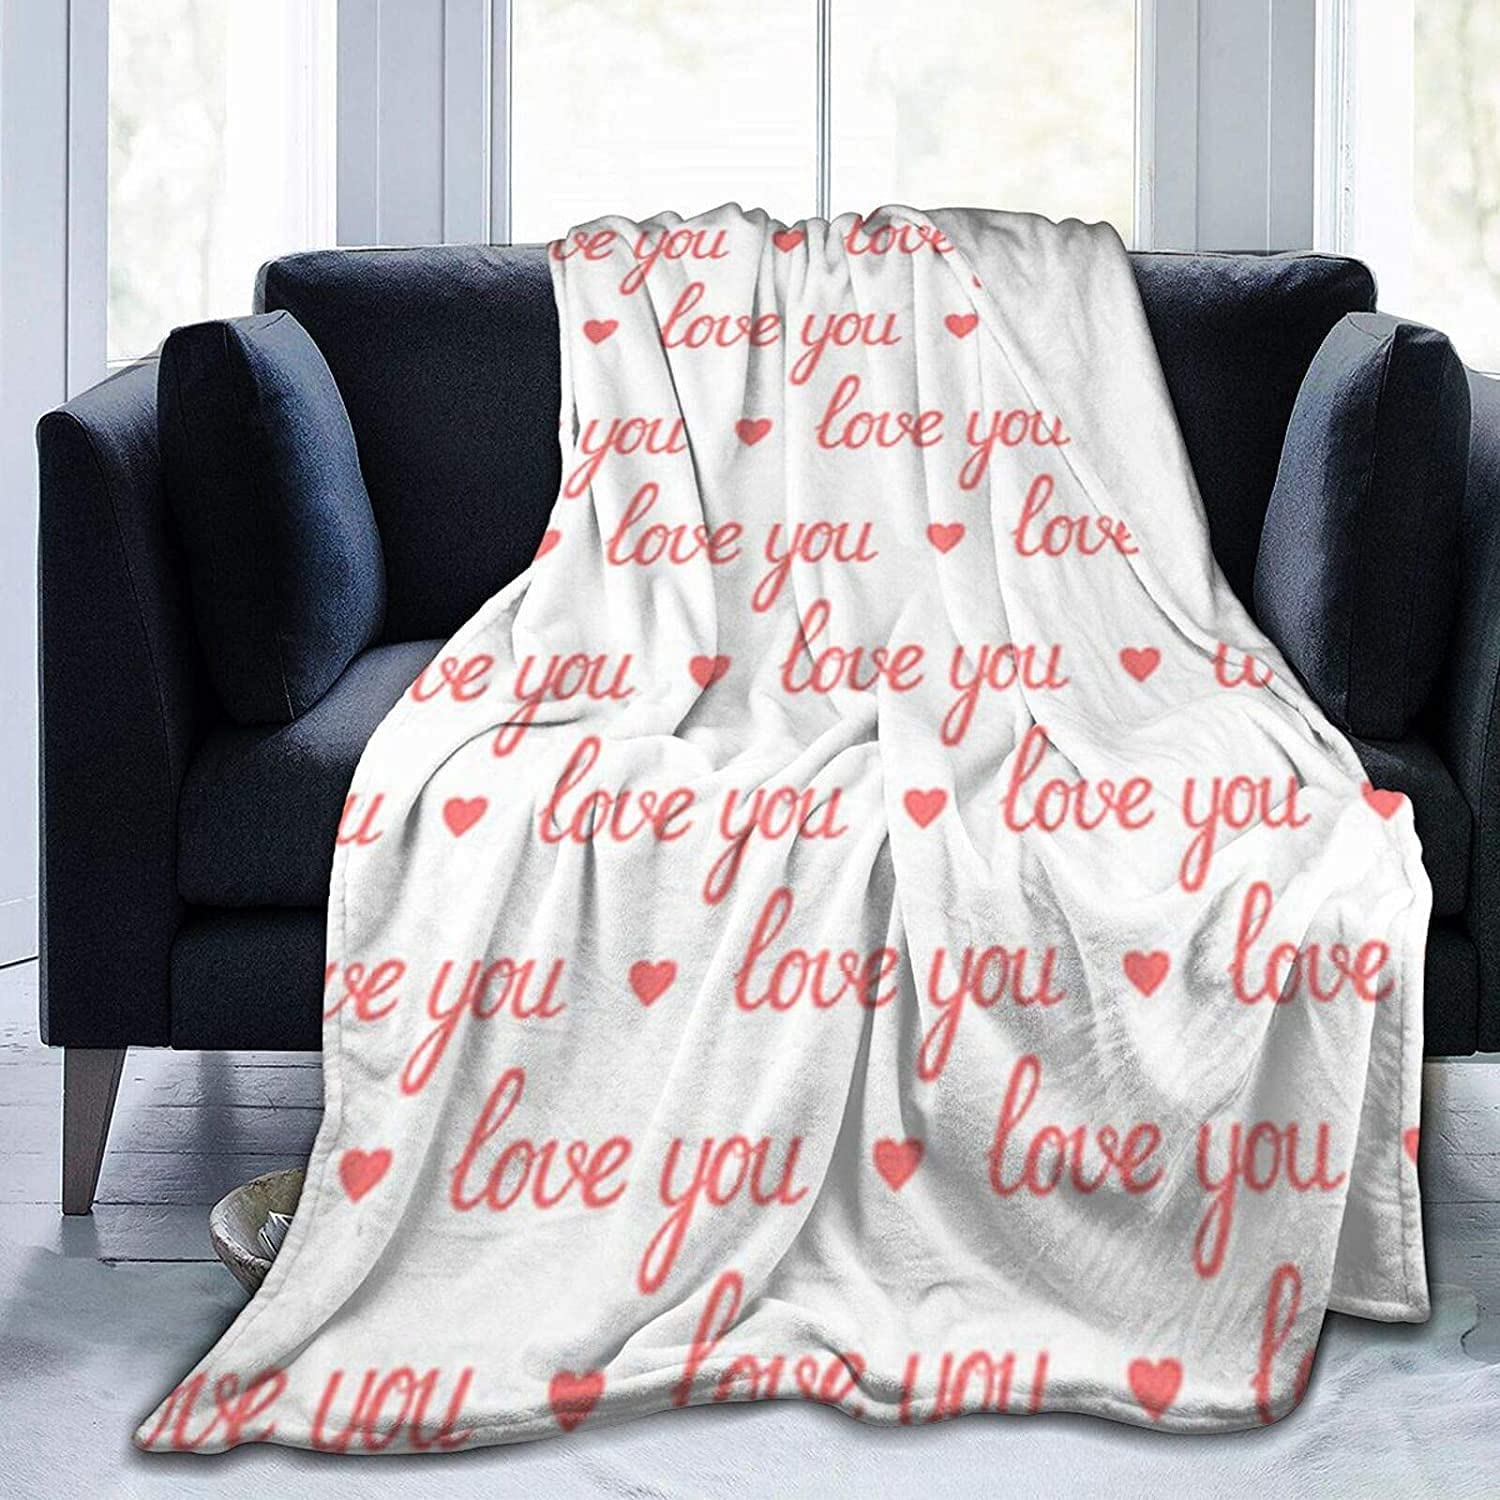 Fleece Blanket Twin Flannel New Shipping Free Shipping Day Regular discount Blanket-Valentine's Love